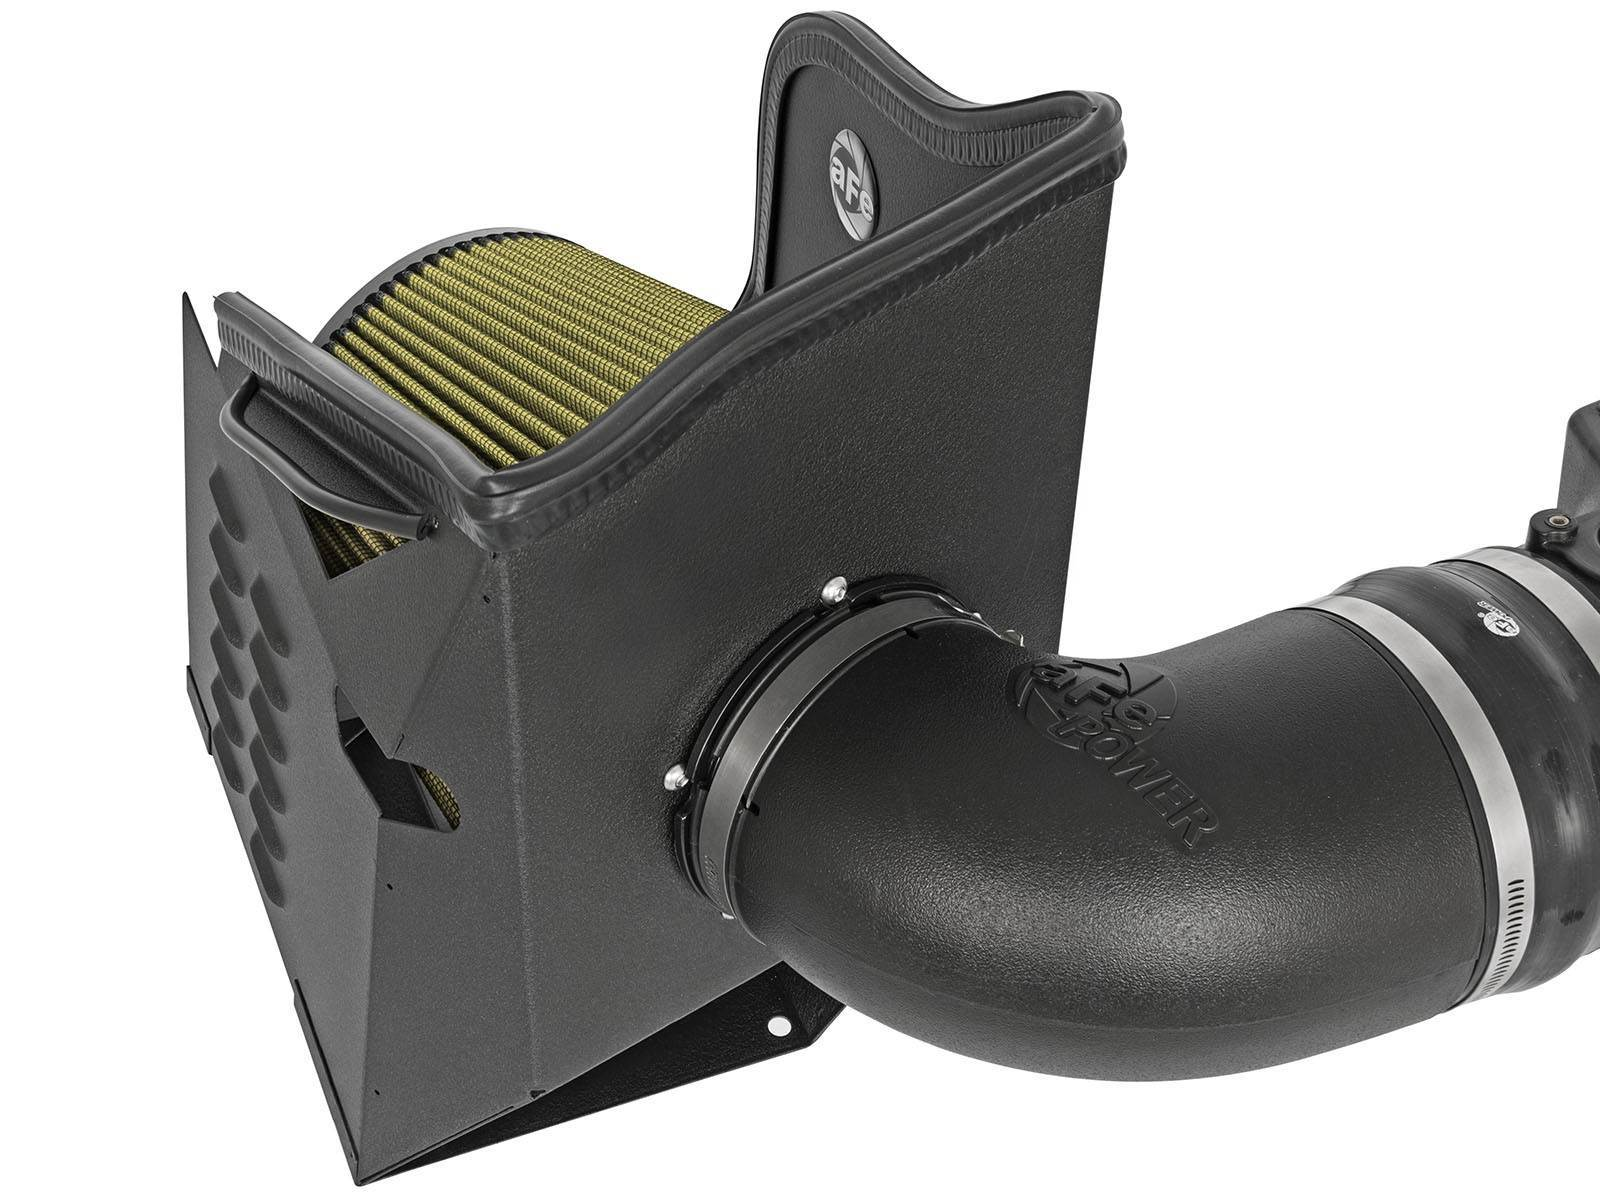 75-12322-1 - aFE Pro Guard 7 Performance Cold Air Intake Systme for 2011-2016 GMC/Chevy Duramax 6.6L LML Diesels